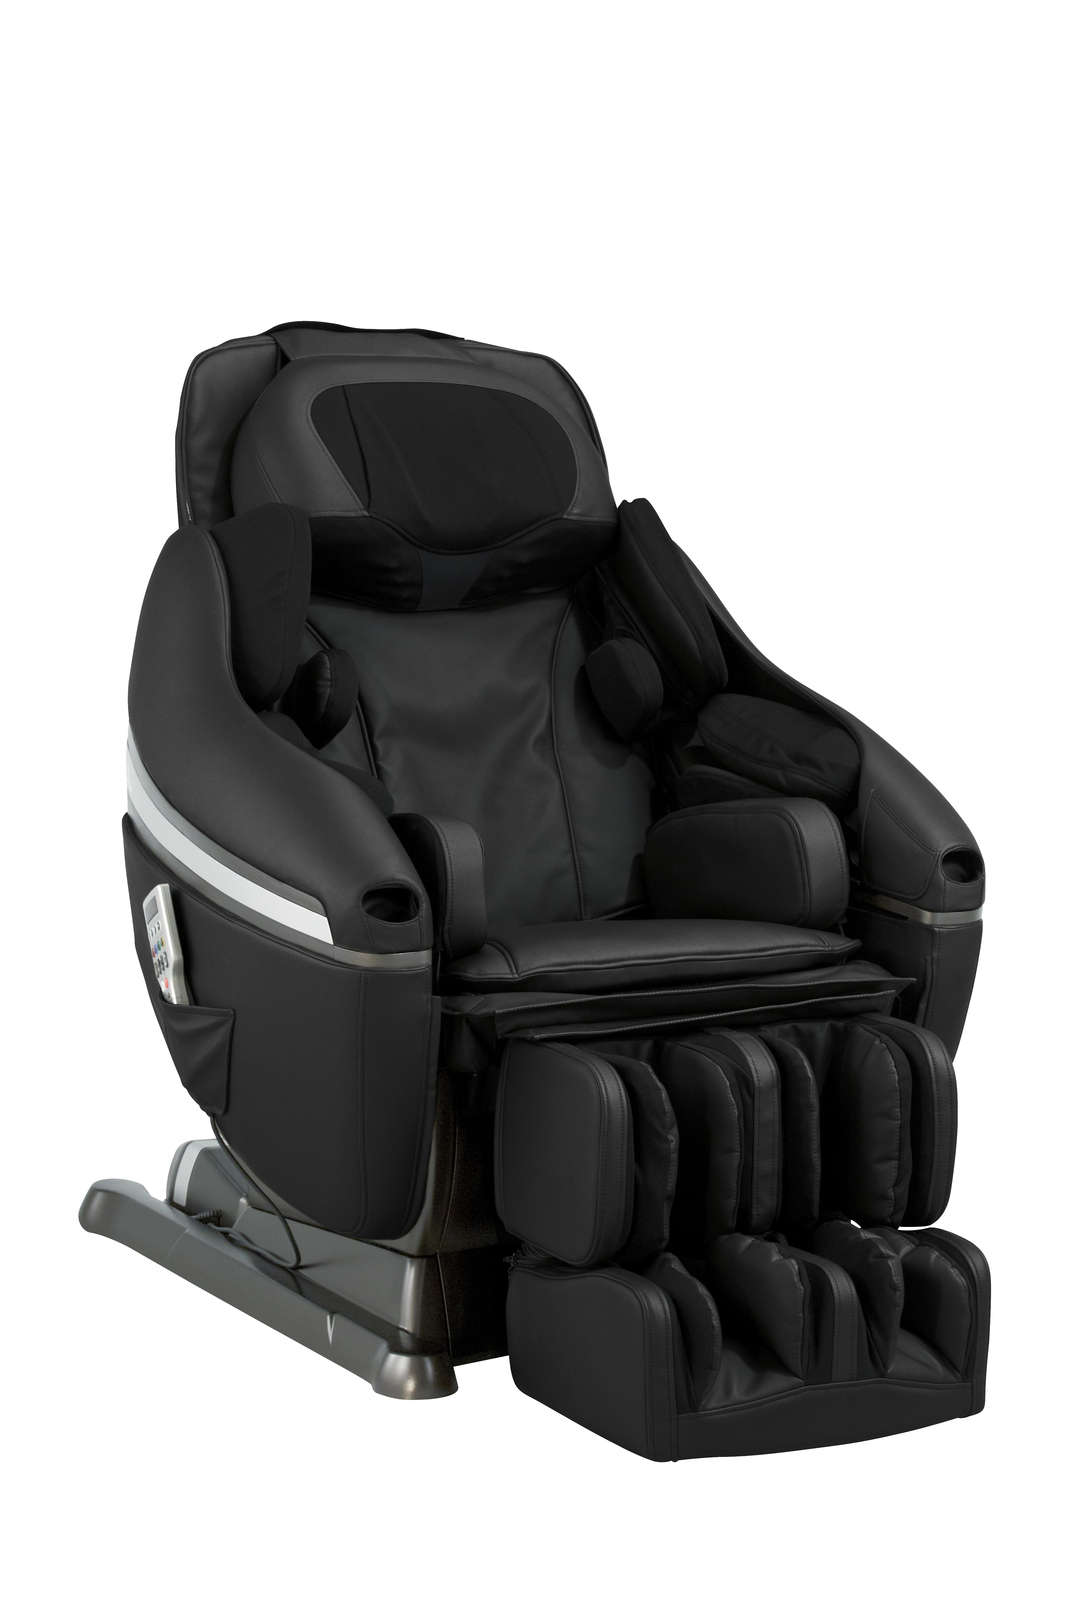 Massaging chair